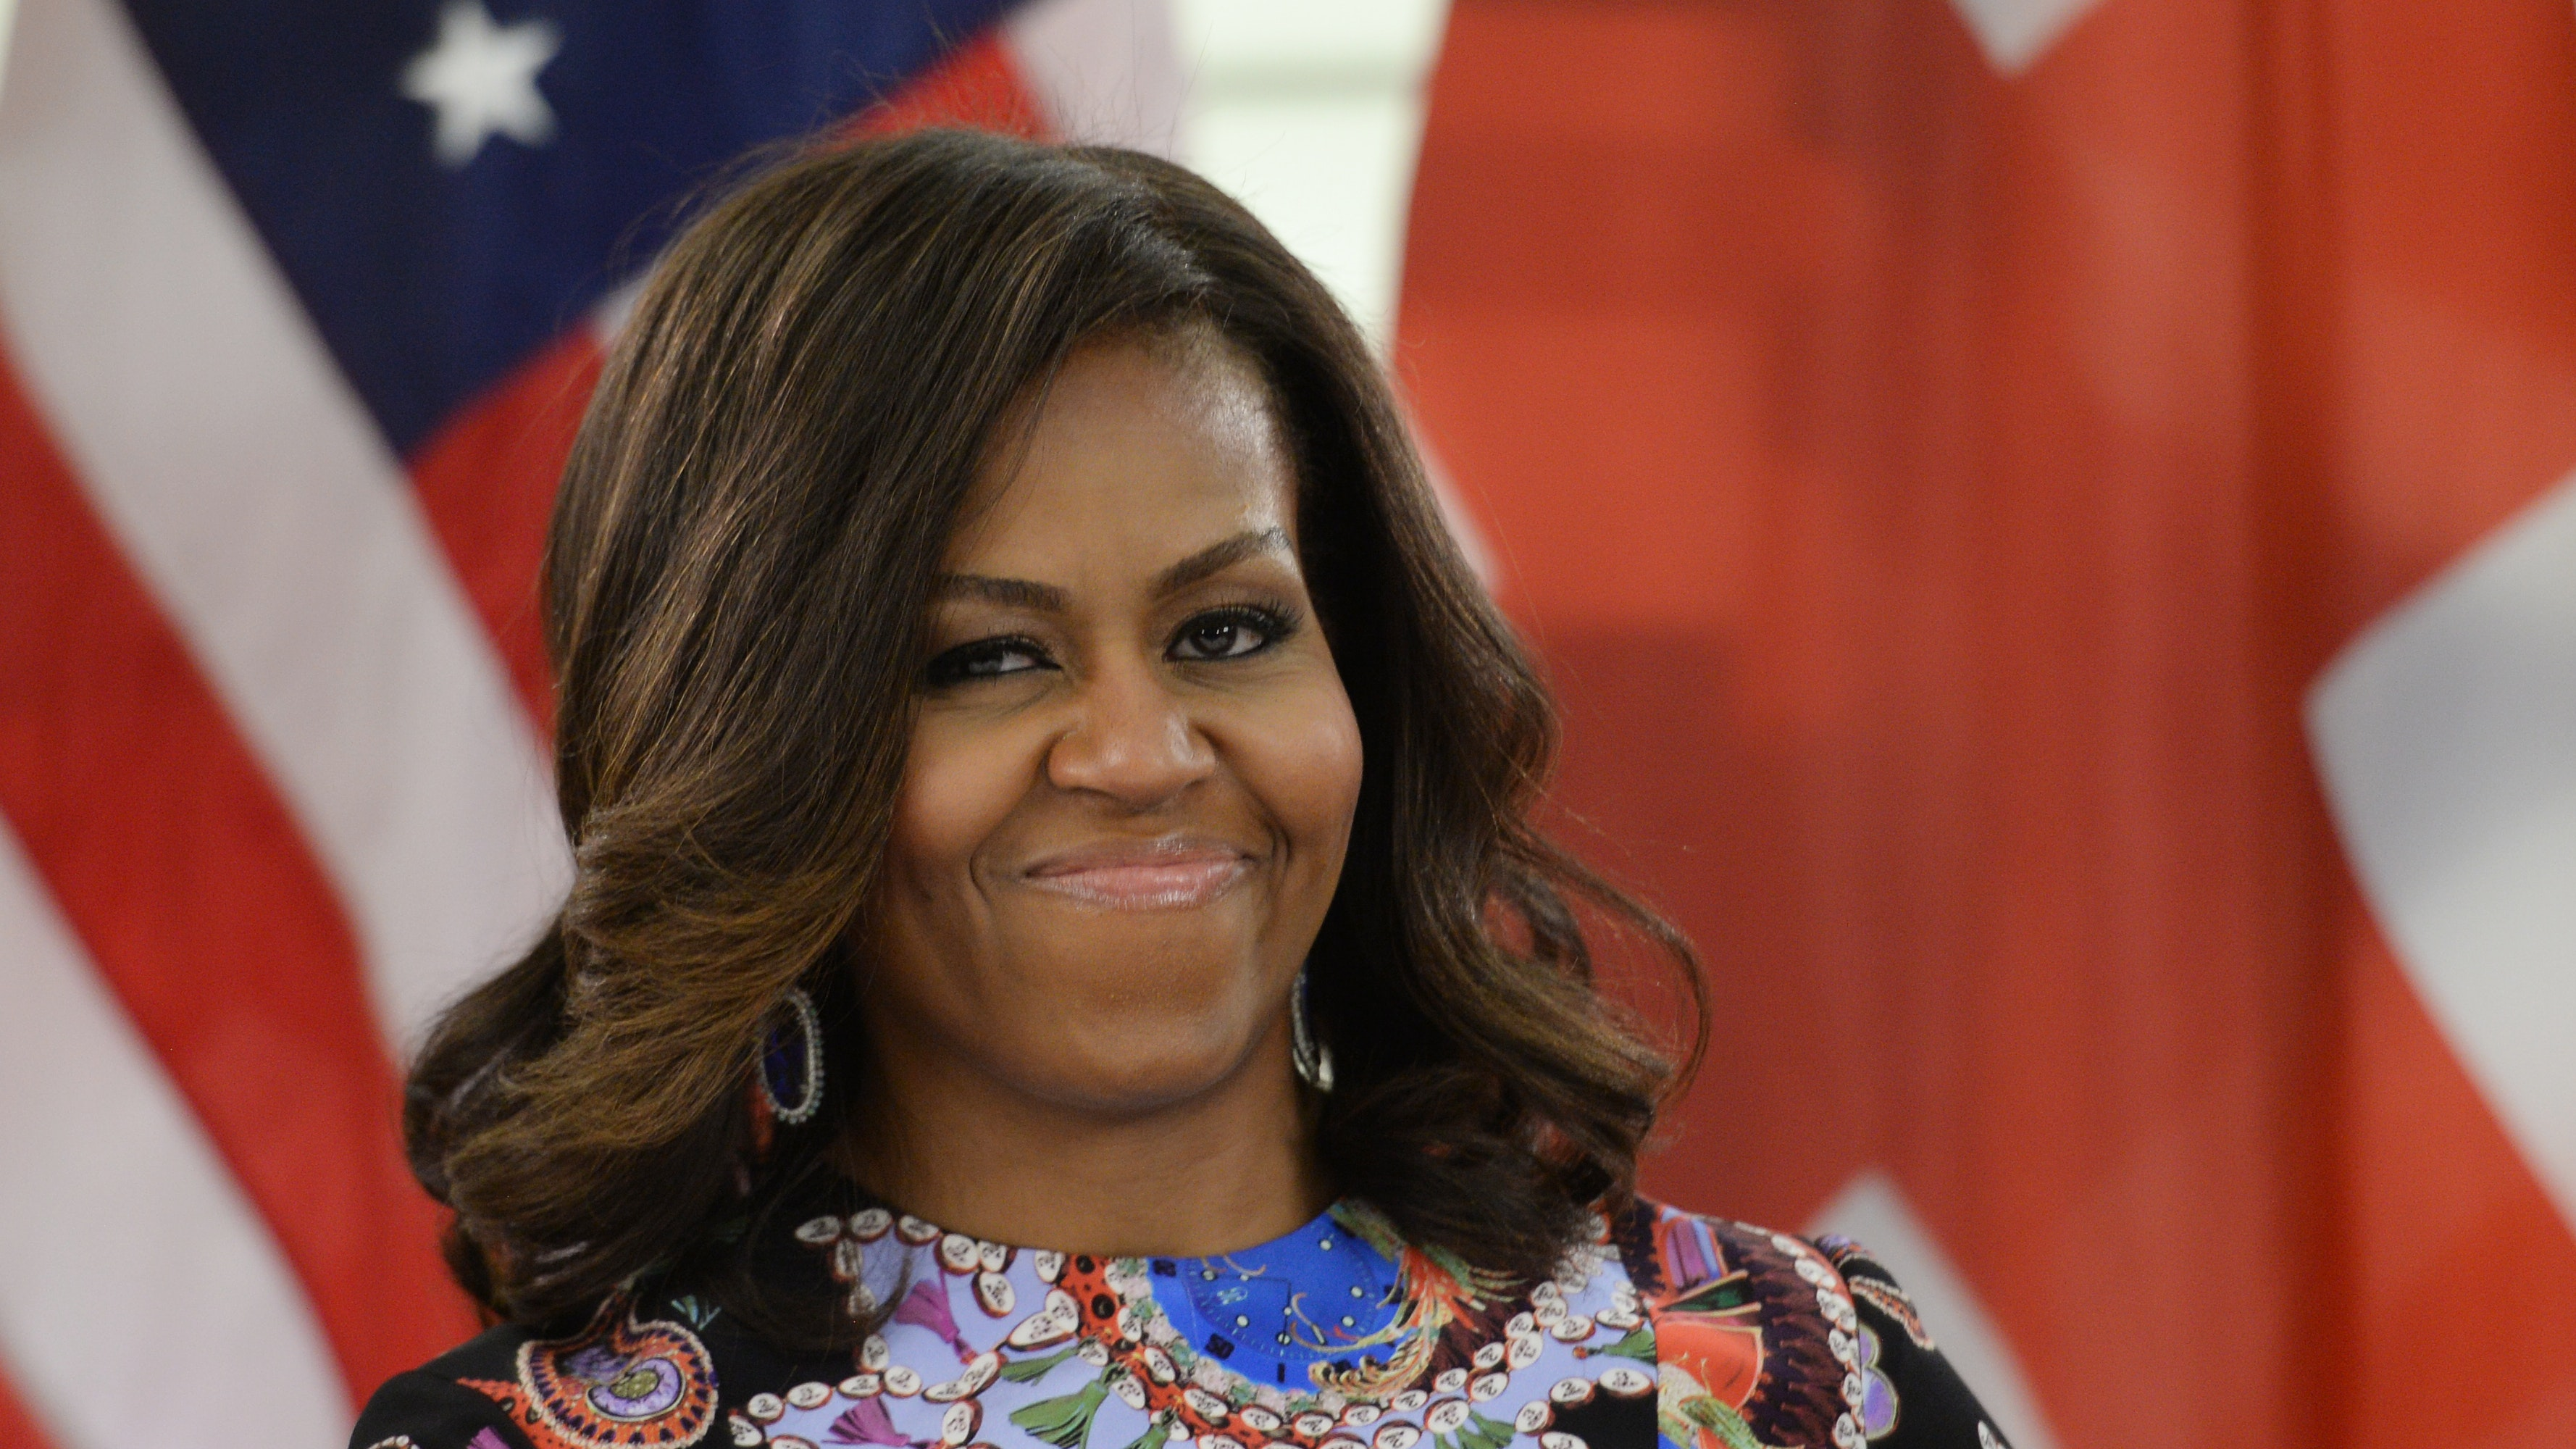 Michelle Obama's Memoir 'Becoming' to Drop this Year